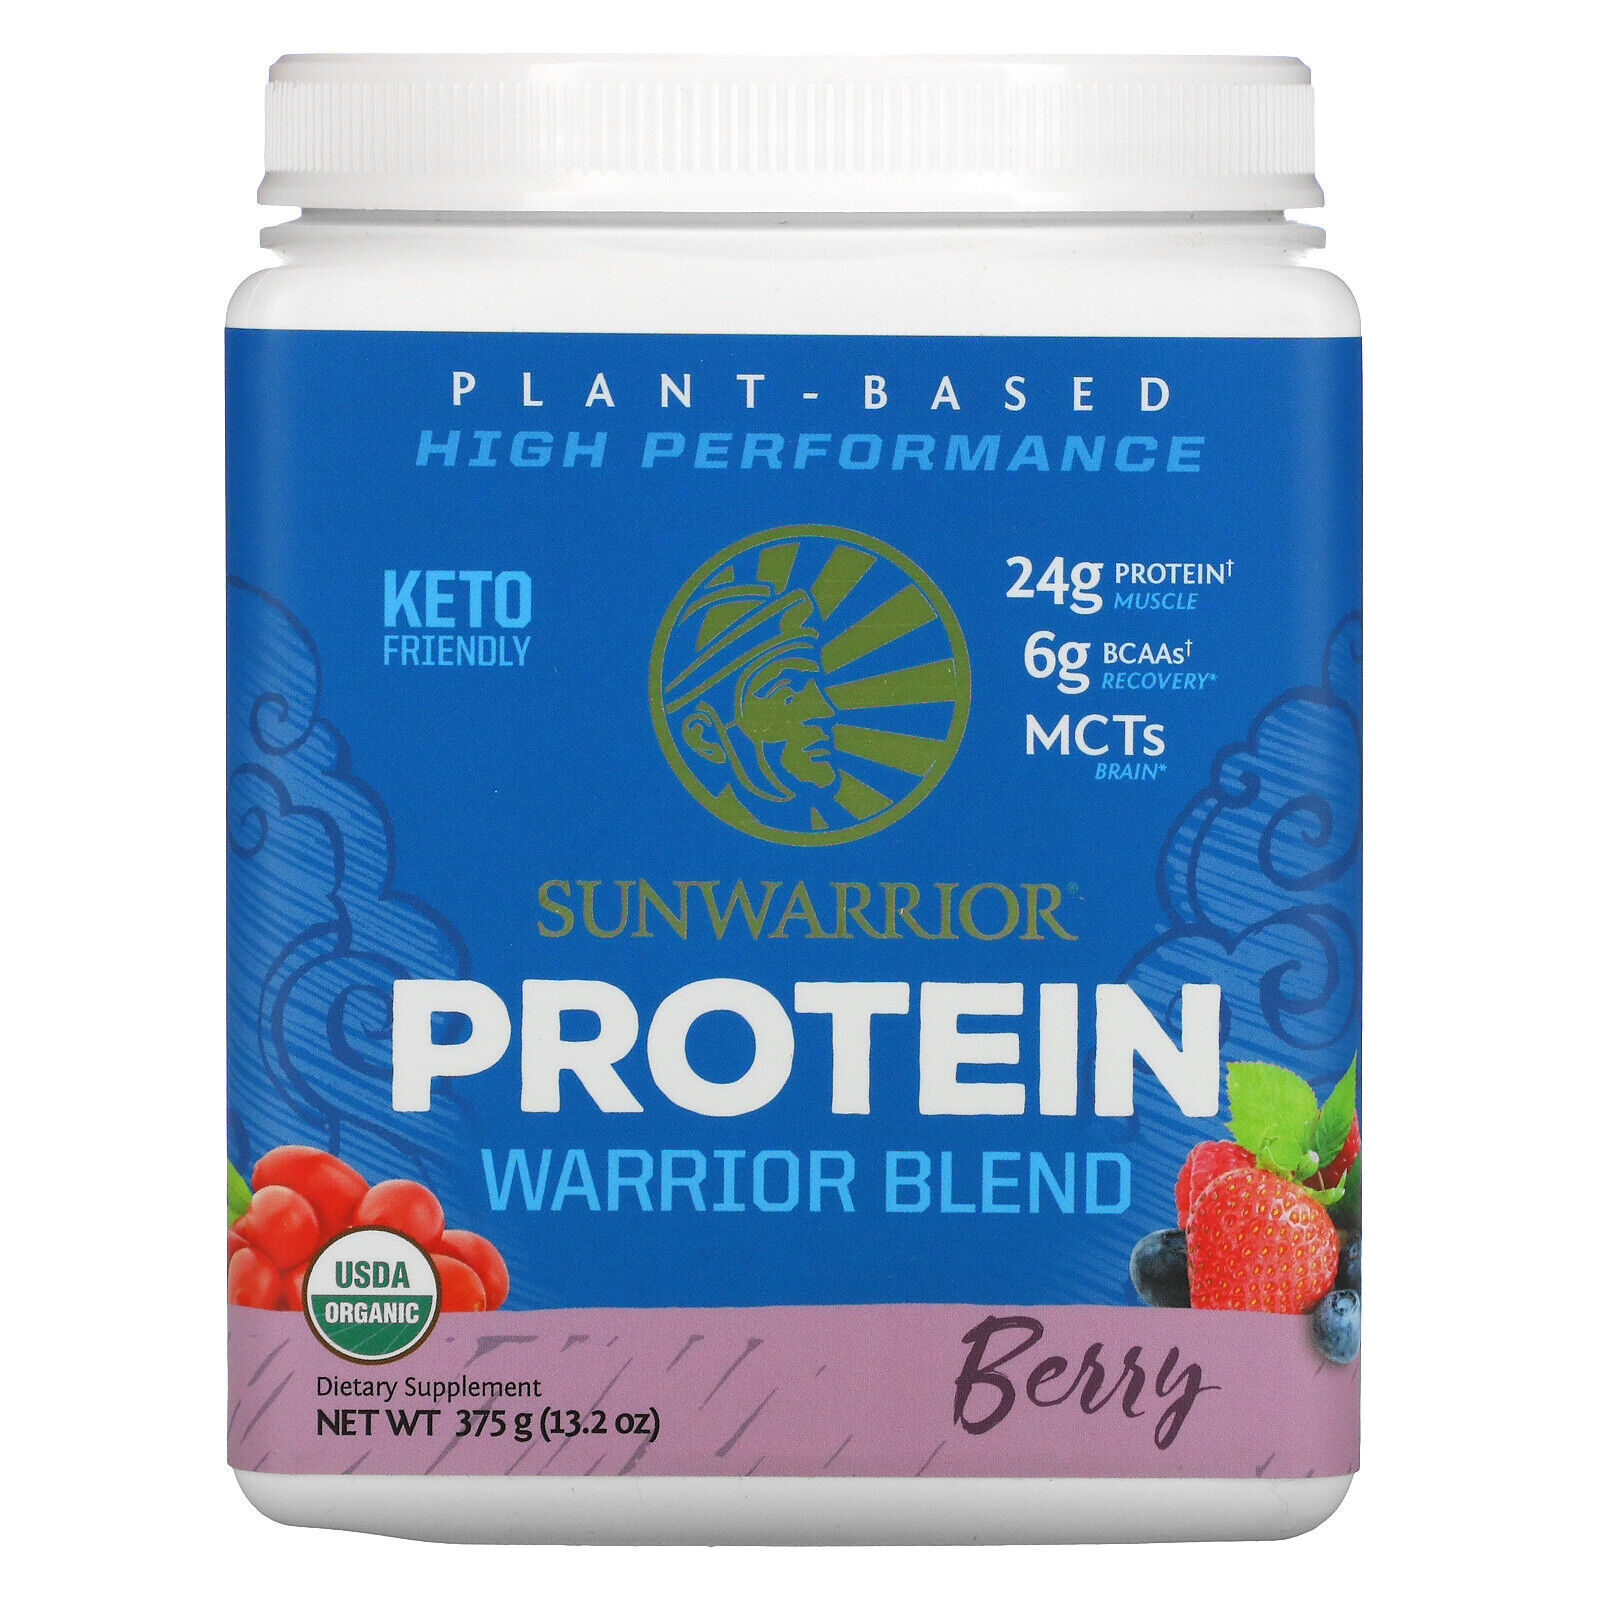 Warrior Blend Protein, Organic Plant-Based, Berry, 13.2 oz (375 g)